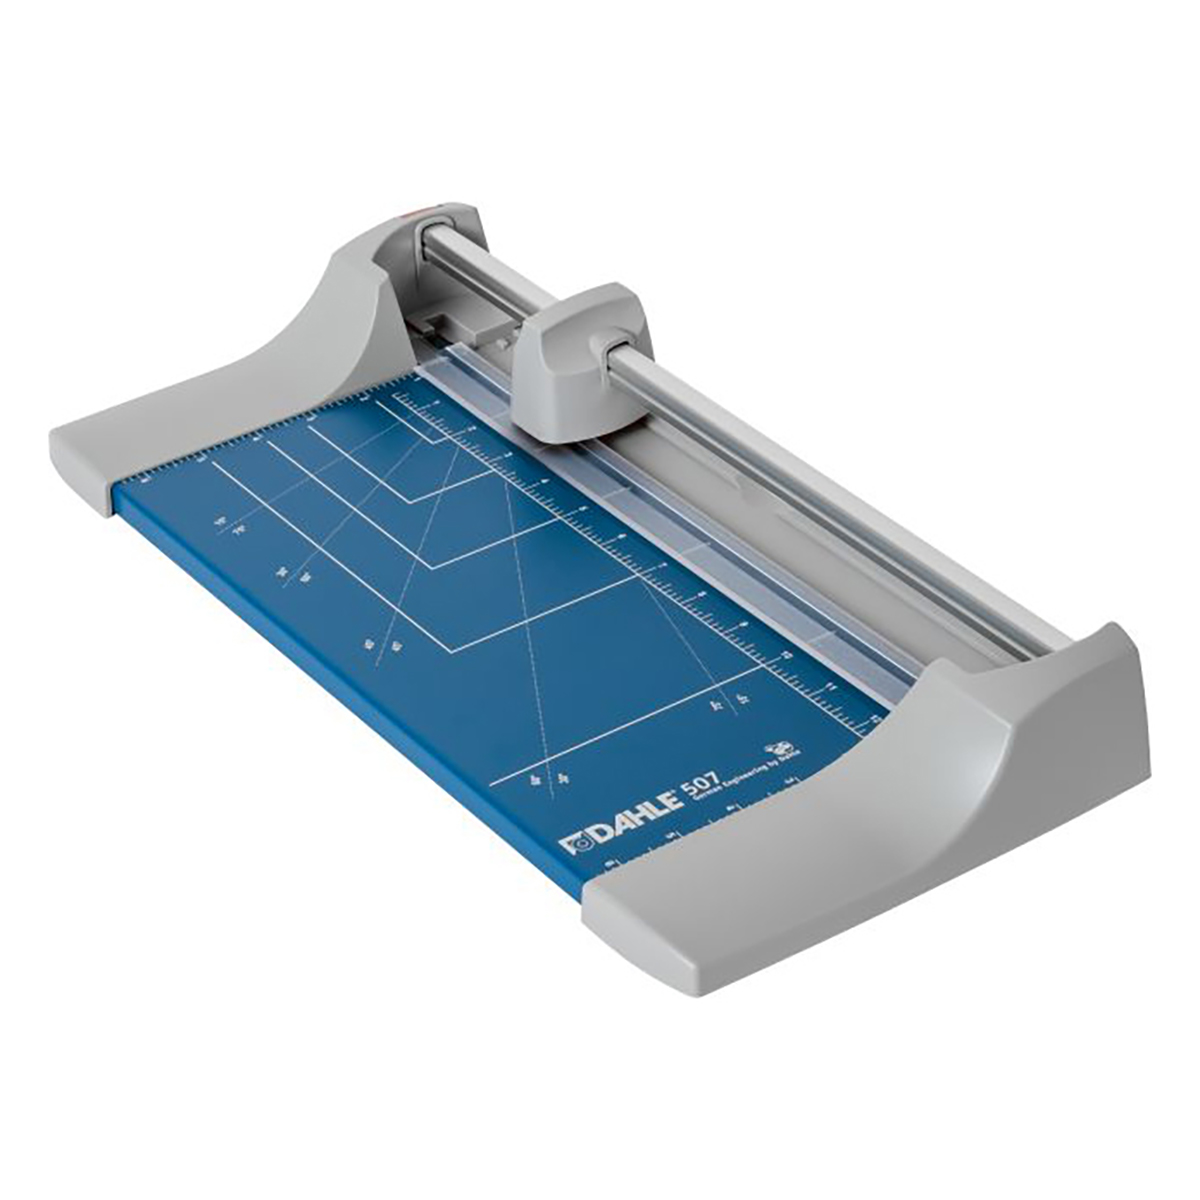 Dahle 507 Hobby Rotary Trimmer - 2nd Generation